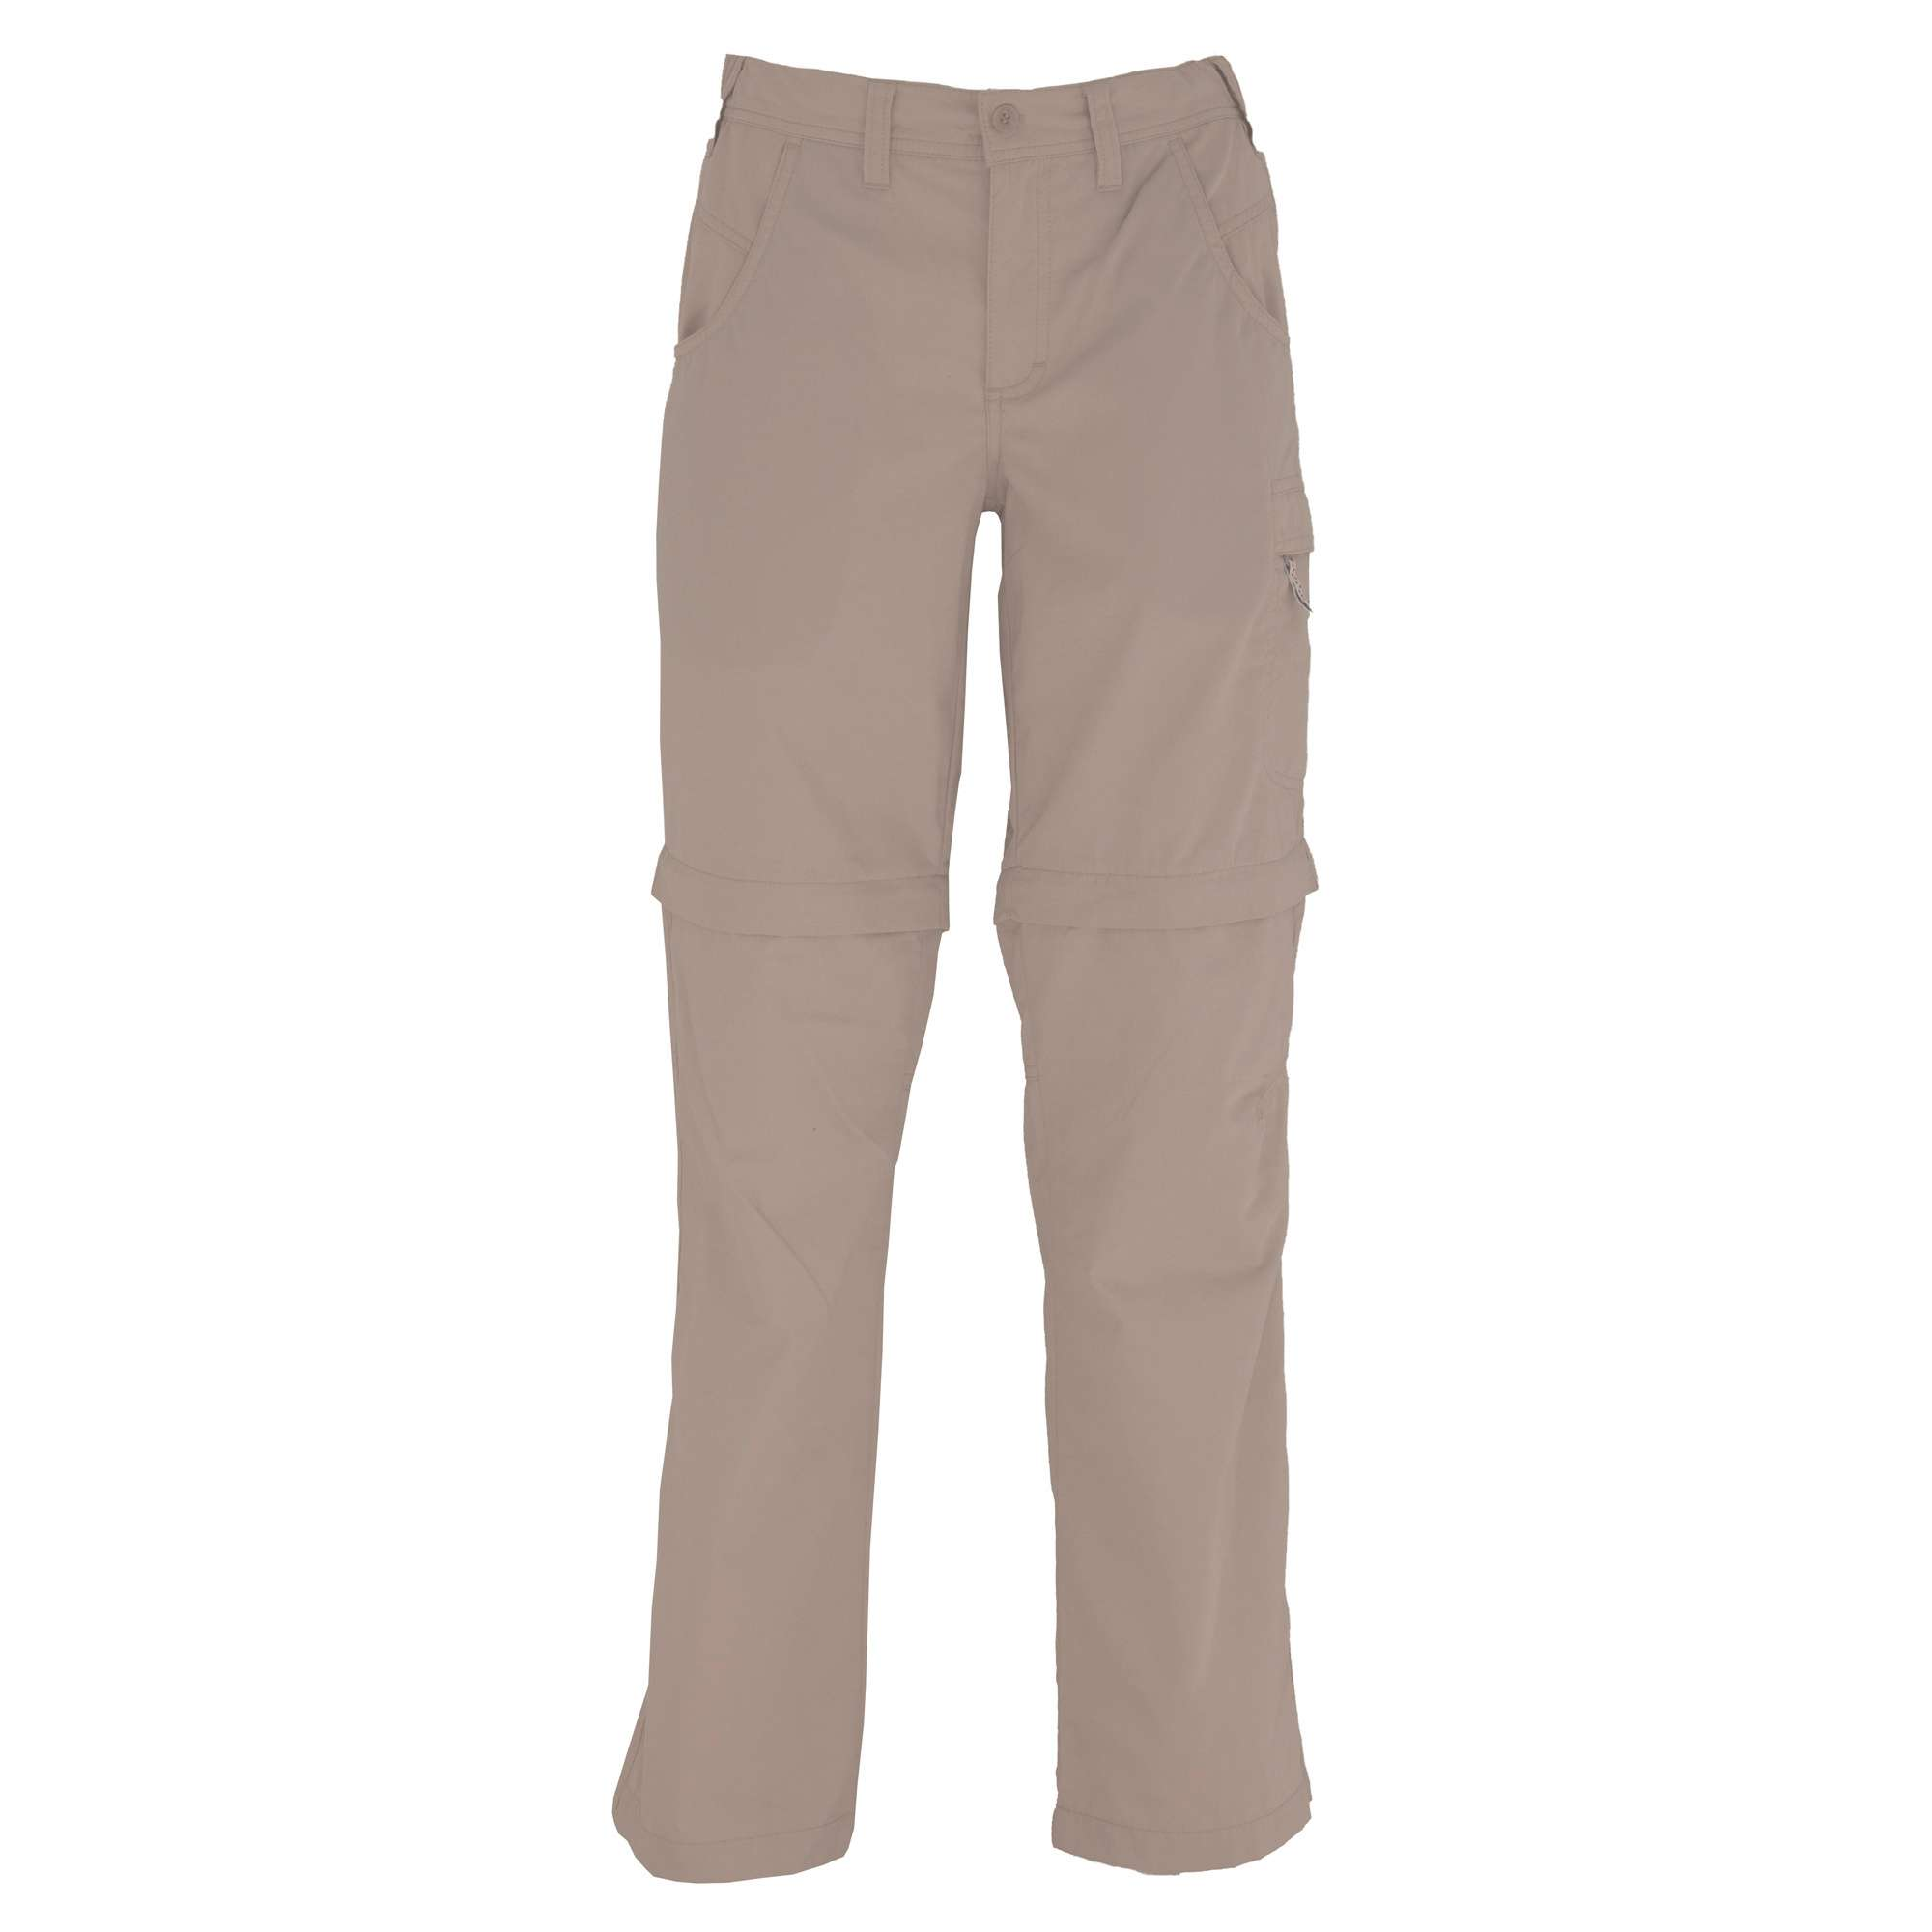 BERGHAUS Women's Navigator Zip Off Pants